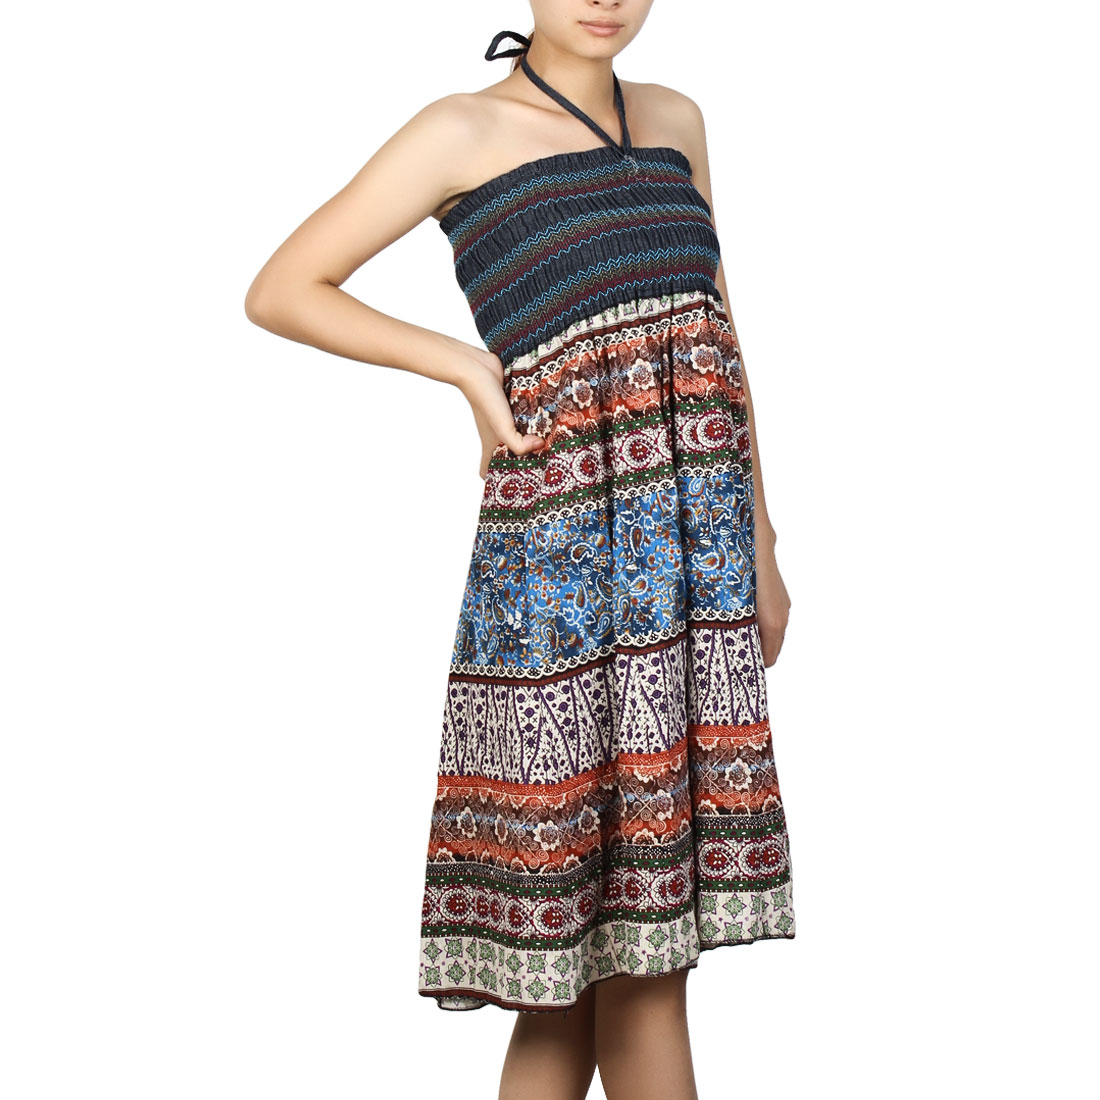 Woman Paisley Pattern Smocked Nation Style Halter Dress Blue Teal XS